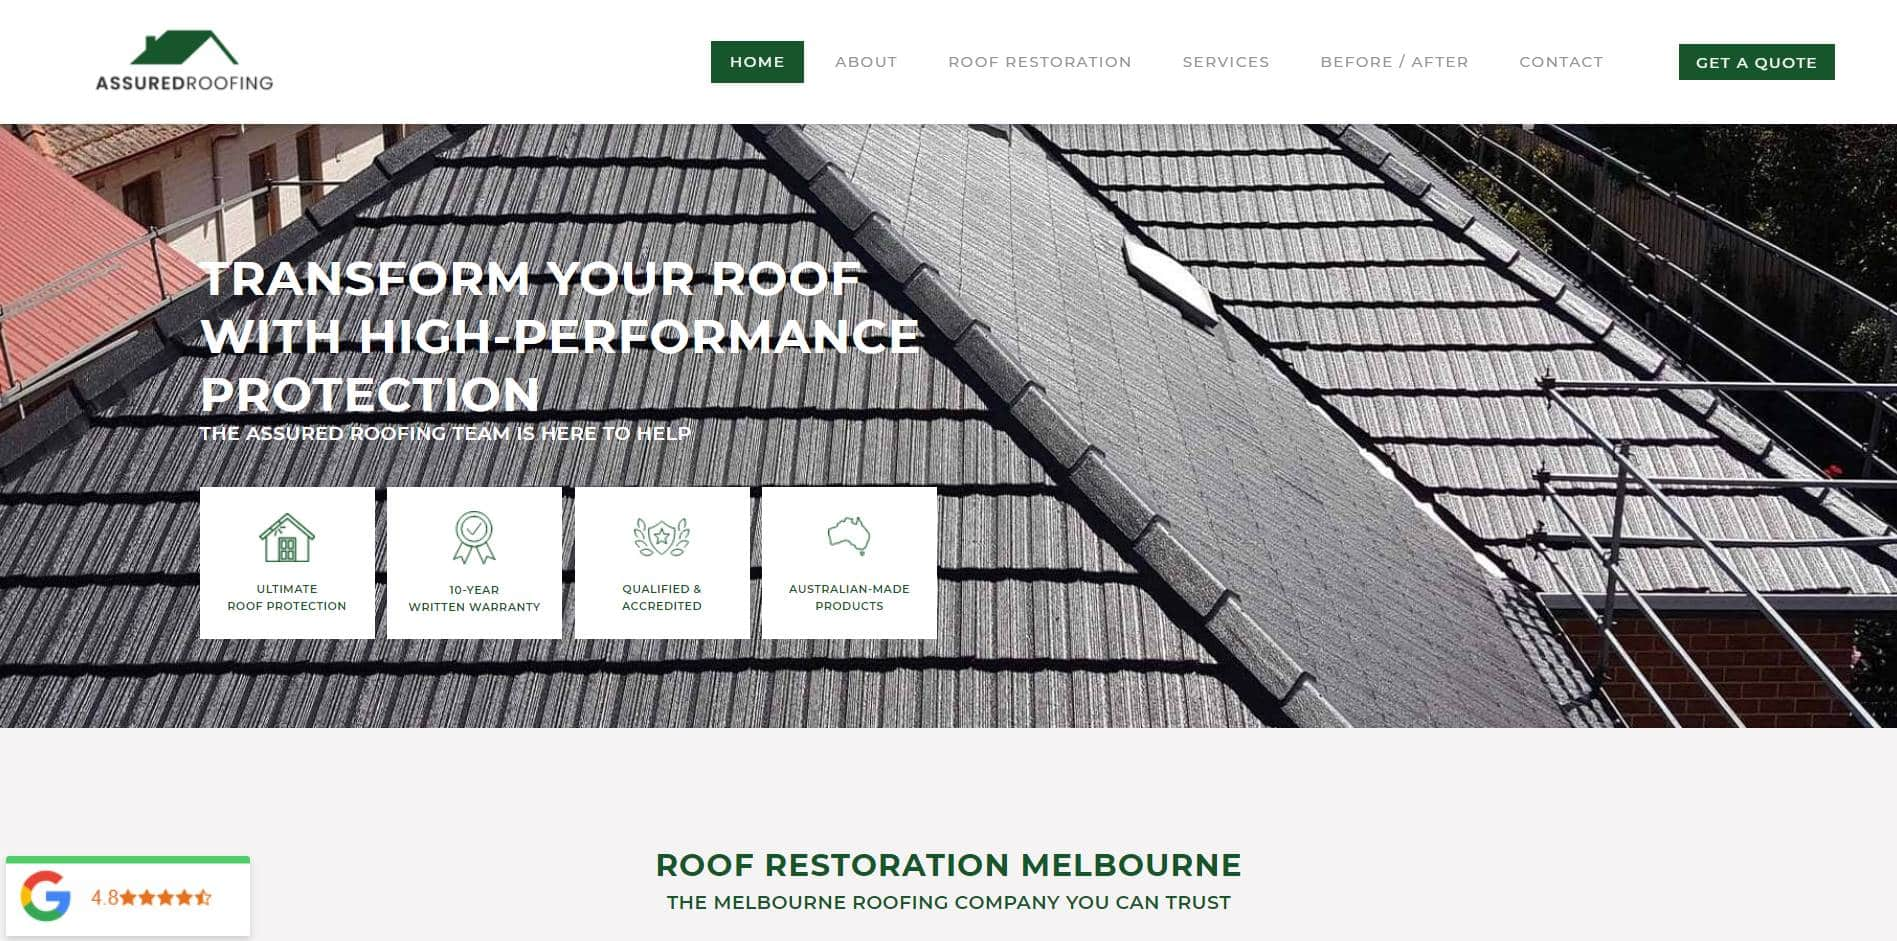 assured roofing